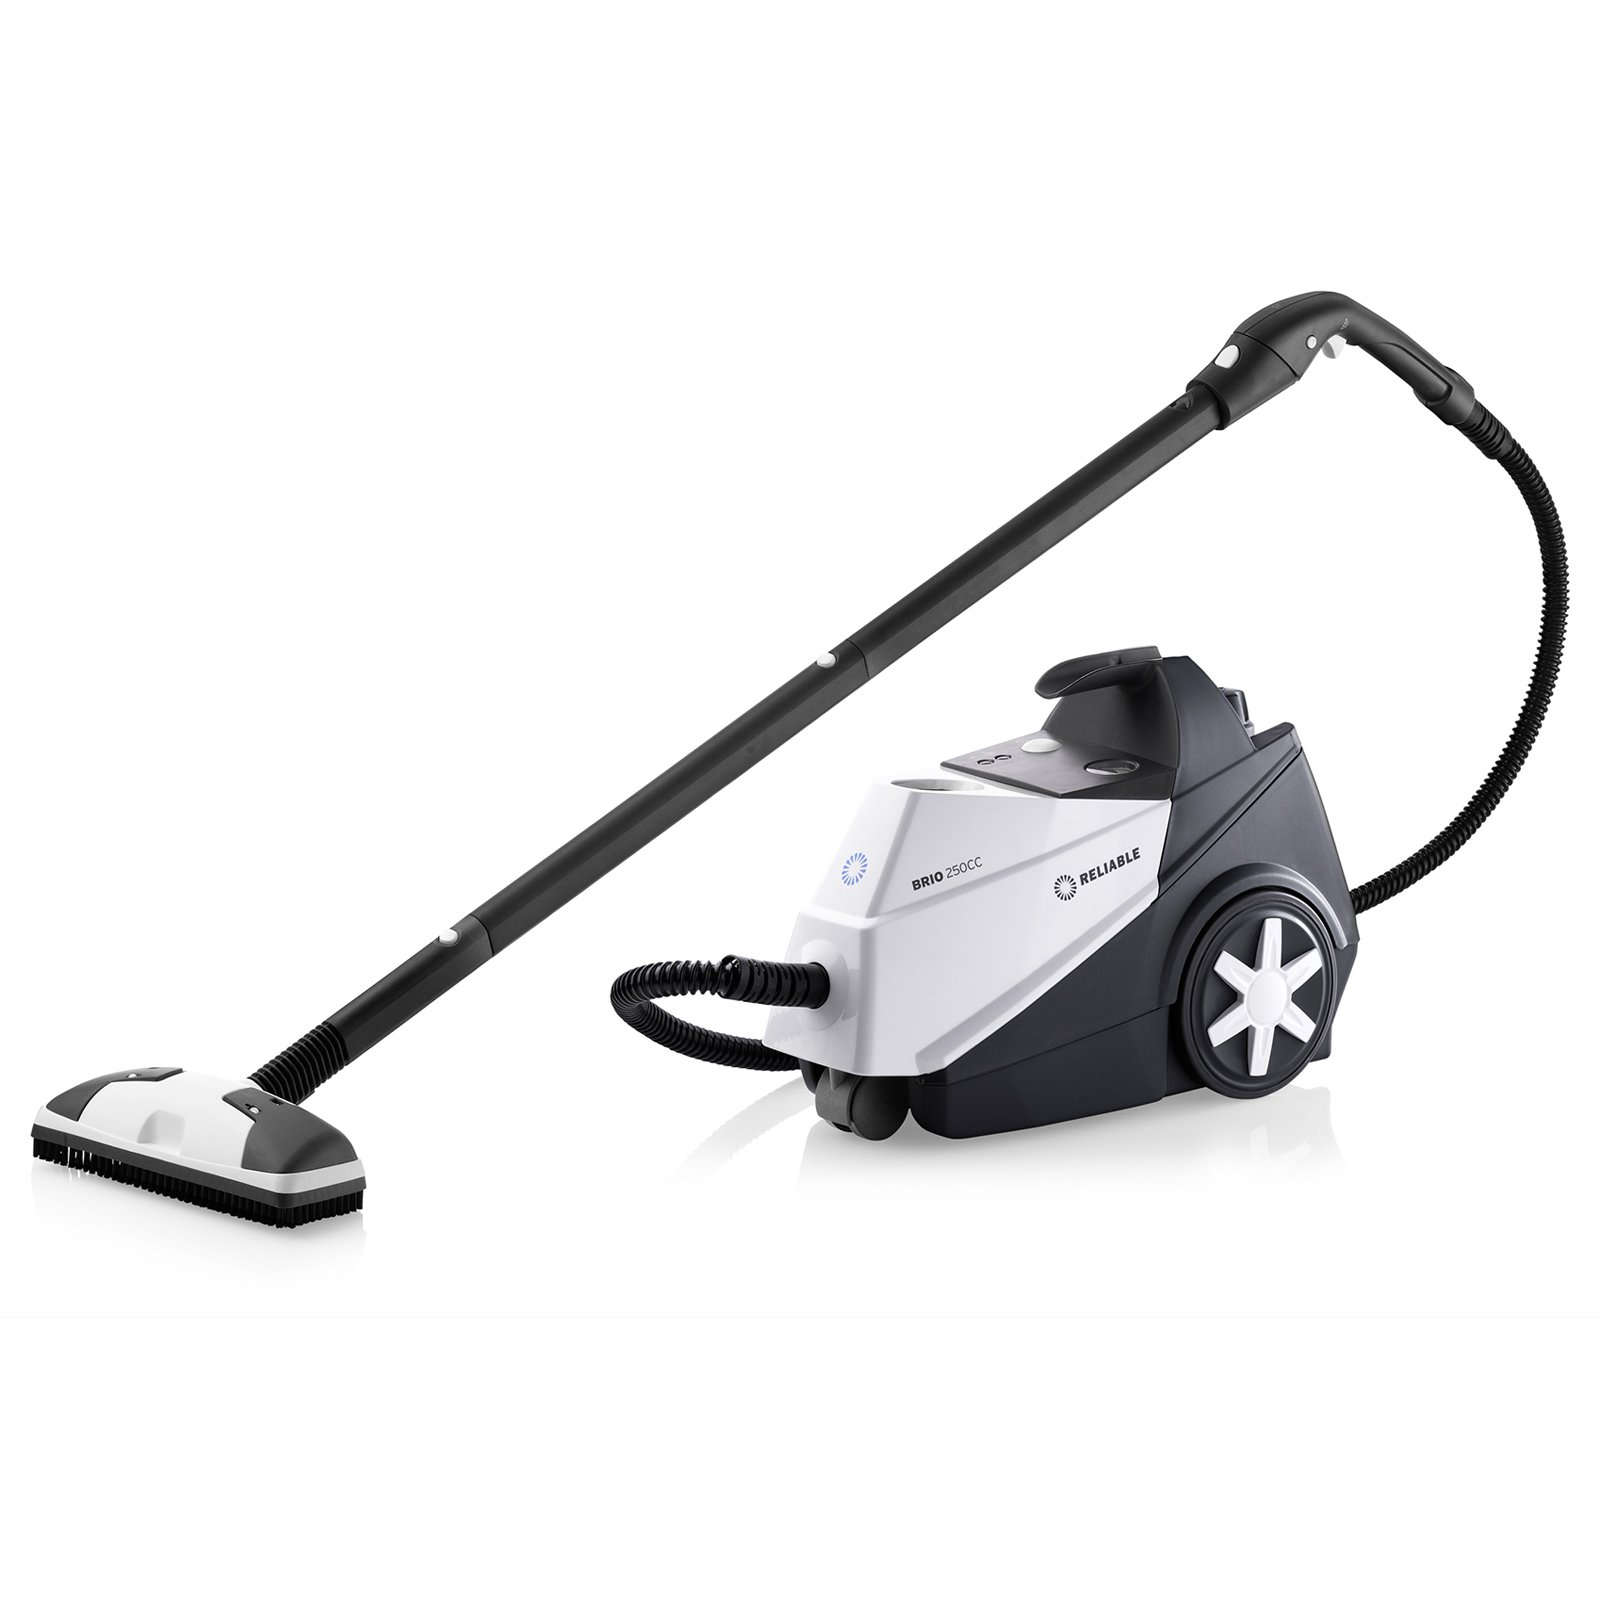 Reliable Brio 250CC Steam Cleaner with 21-Piece Accessory Kit